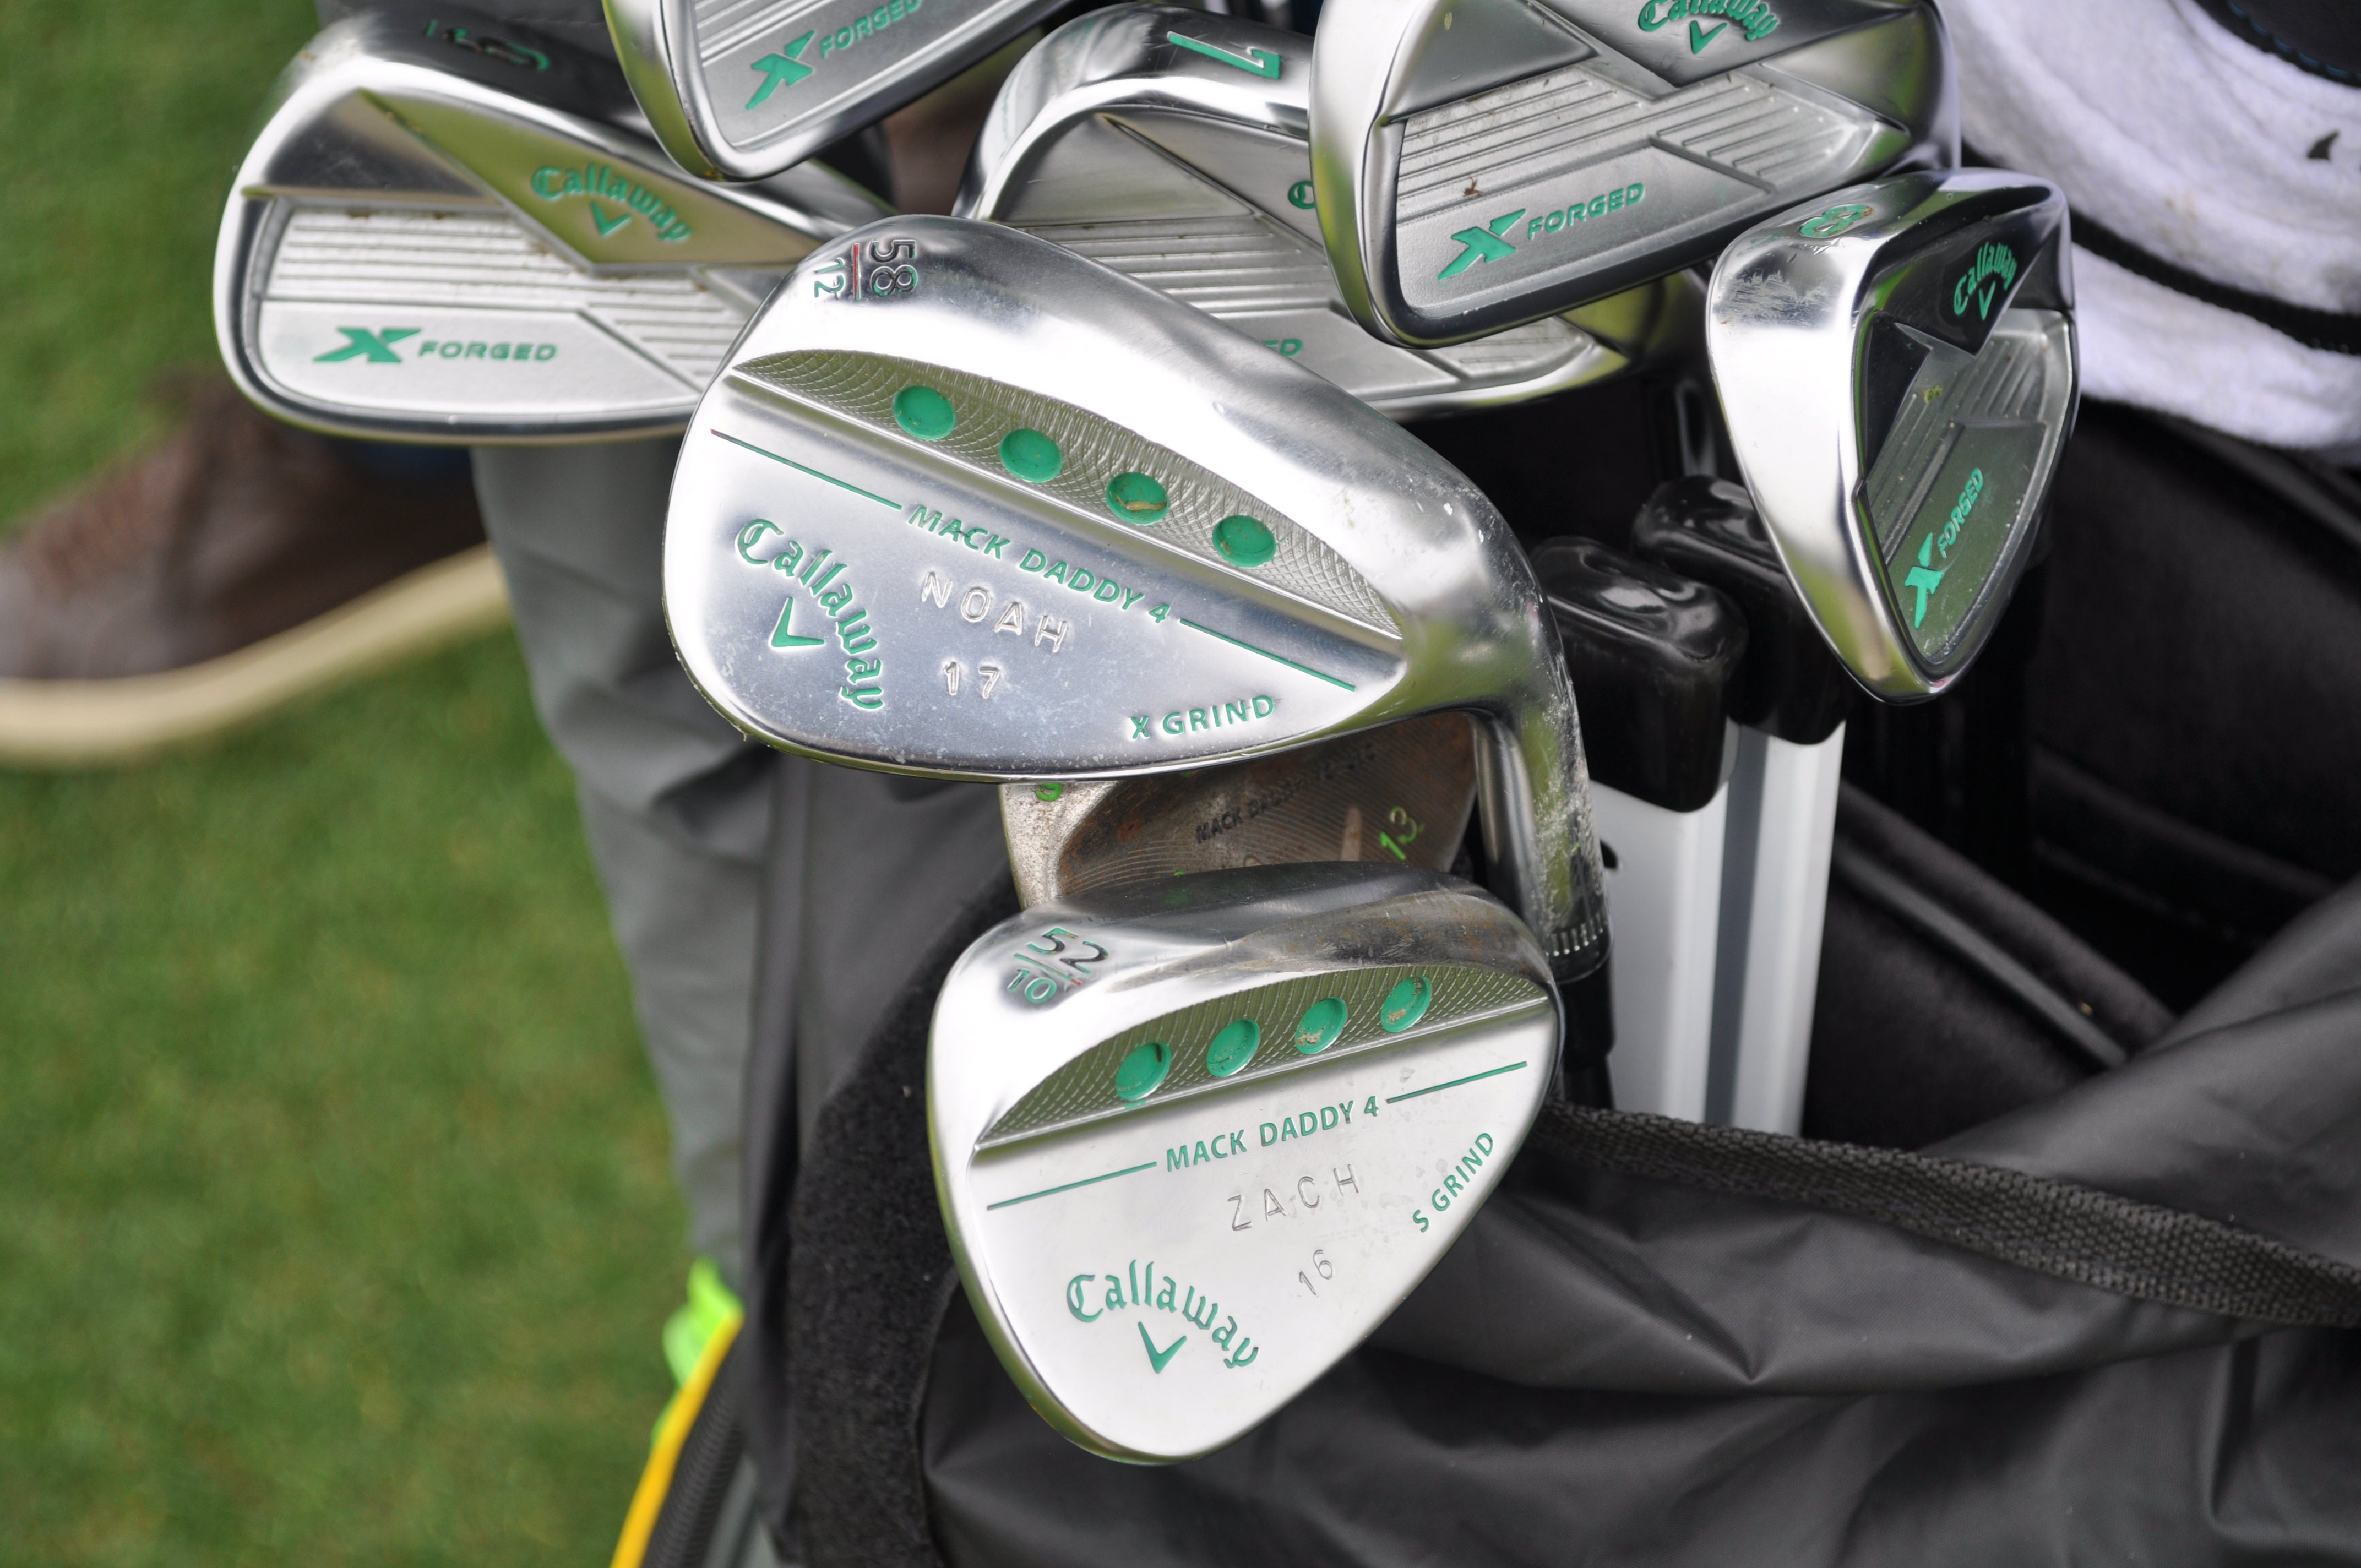 Danny Willett had the names of his kids stamped on each Callaway Mack Daddy 4 wedge.